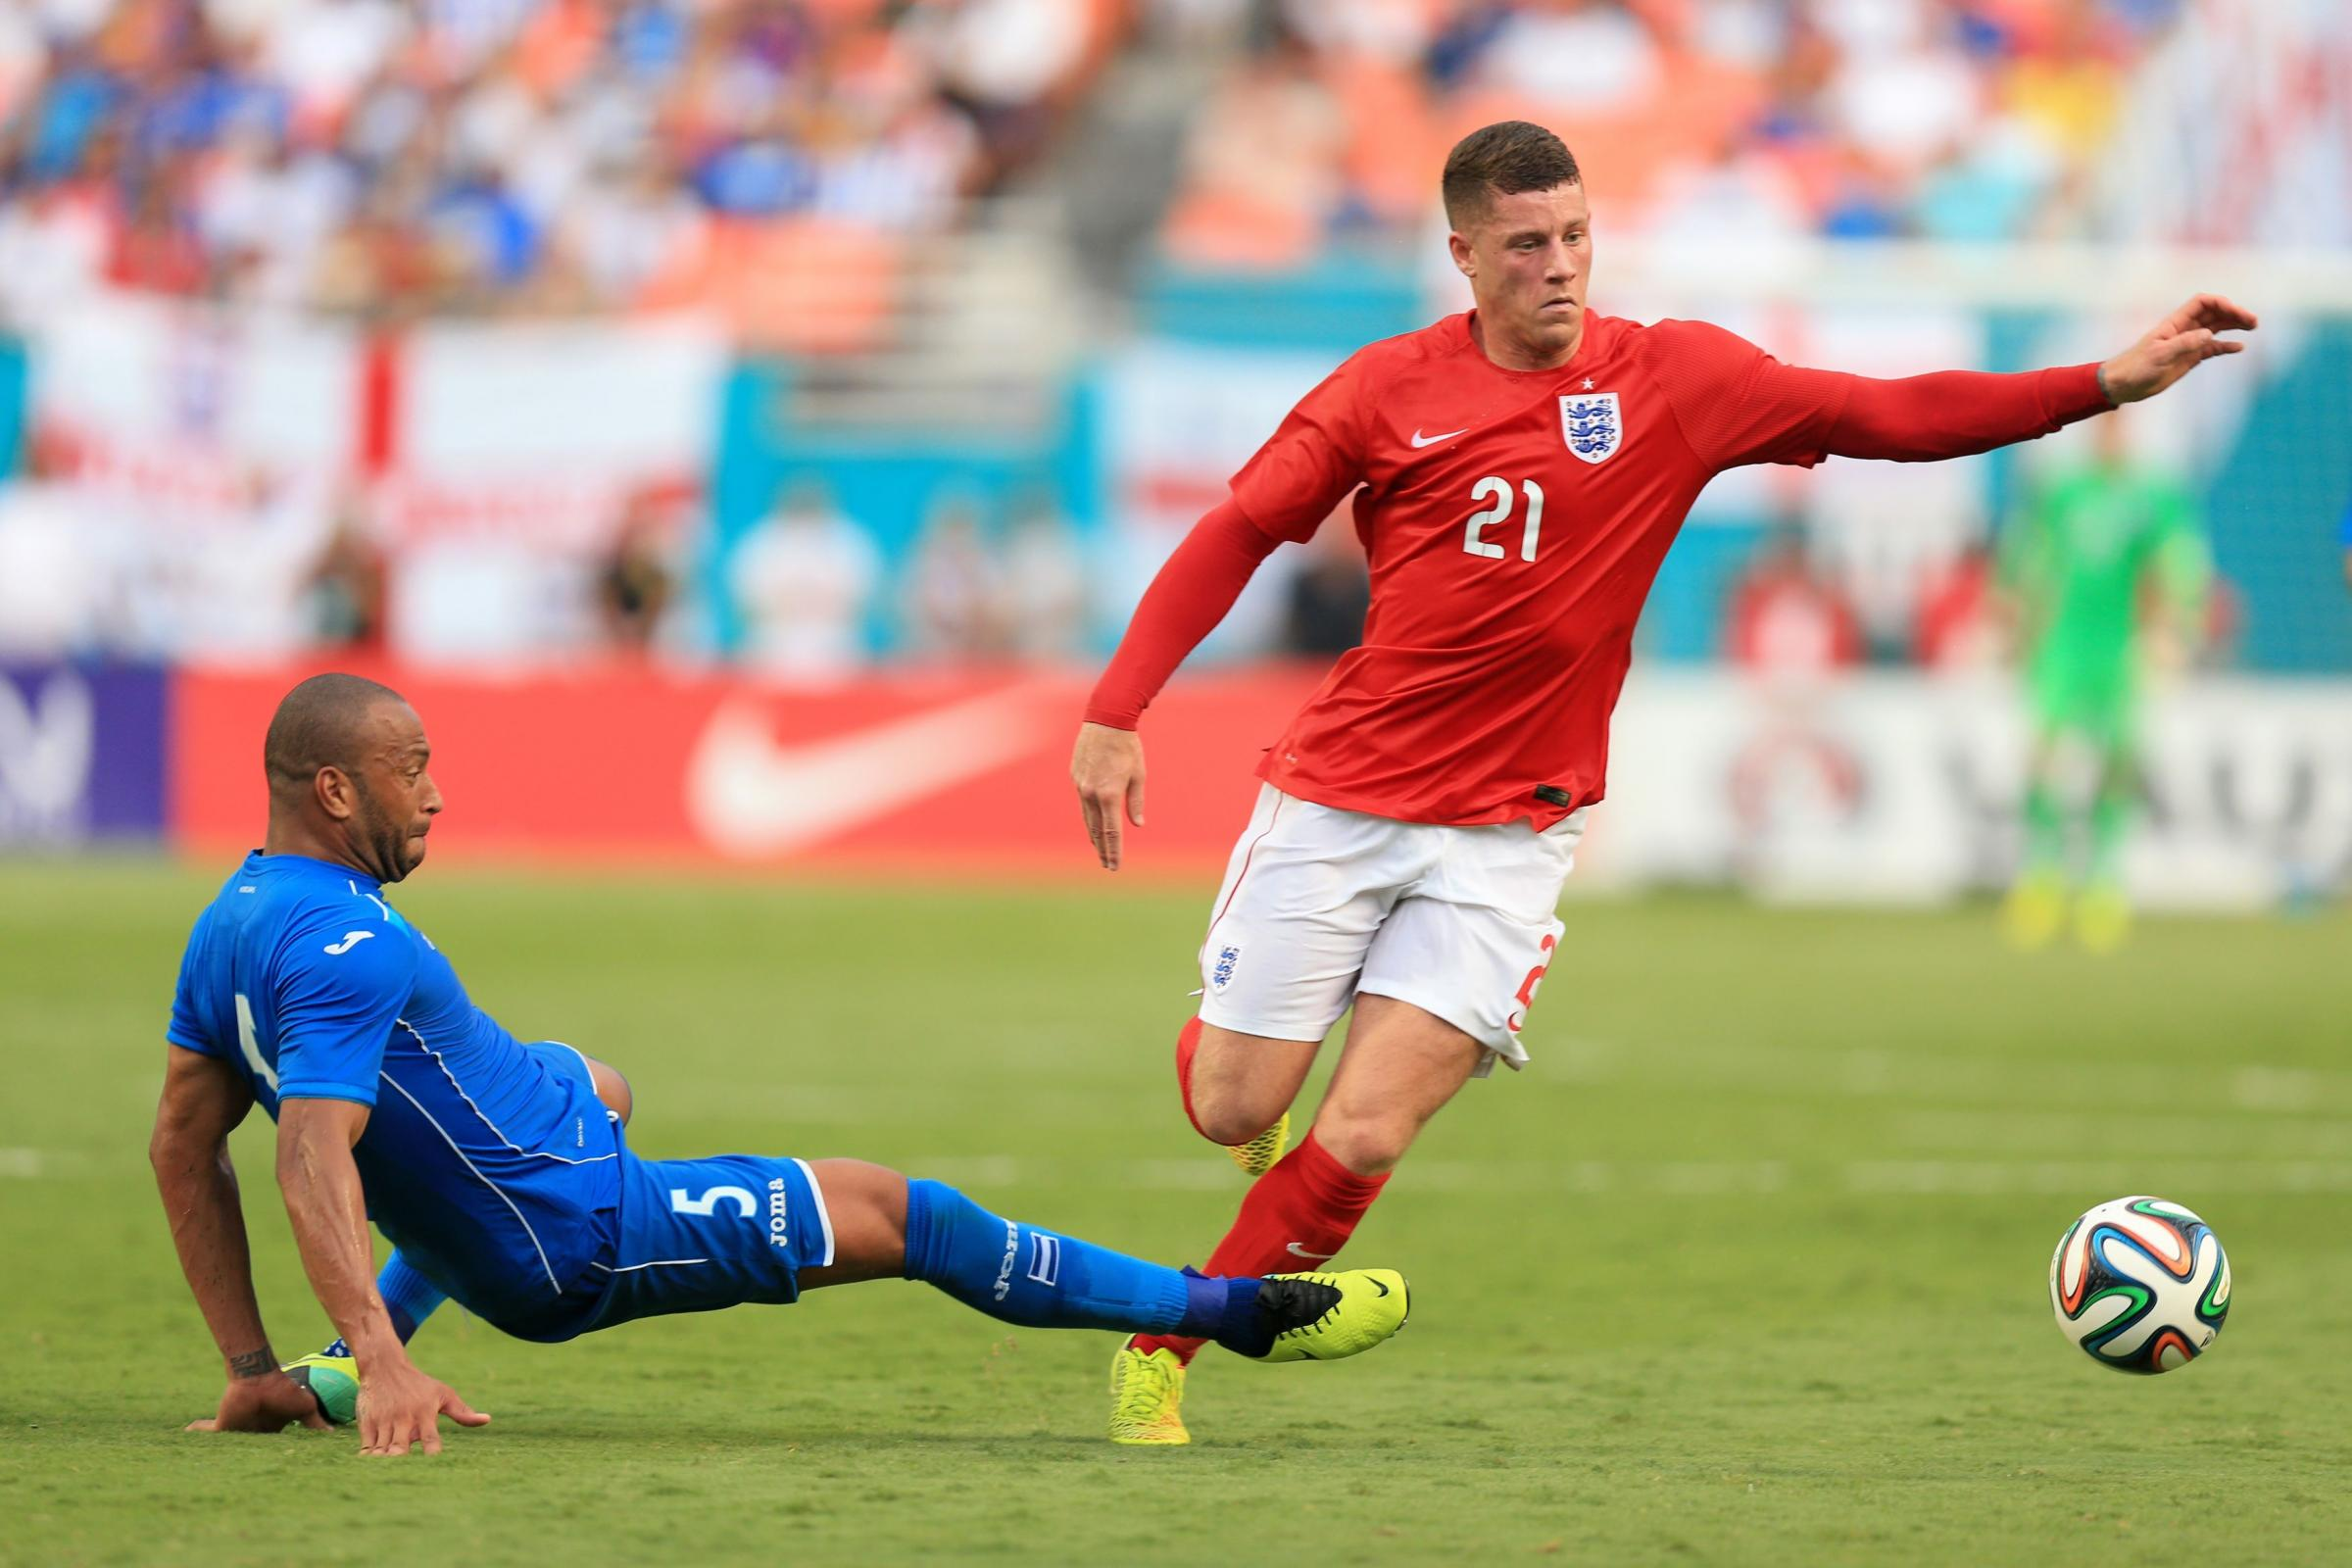 CHANCE TO SHINE: Ross Barkley